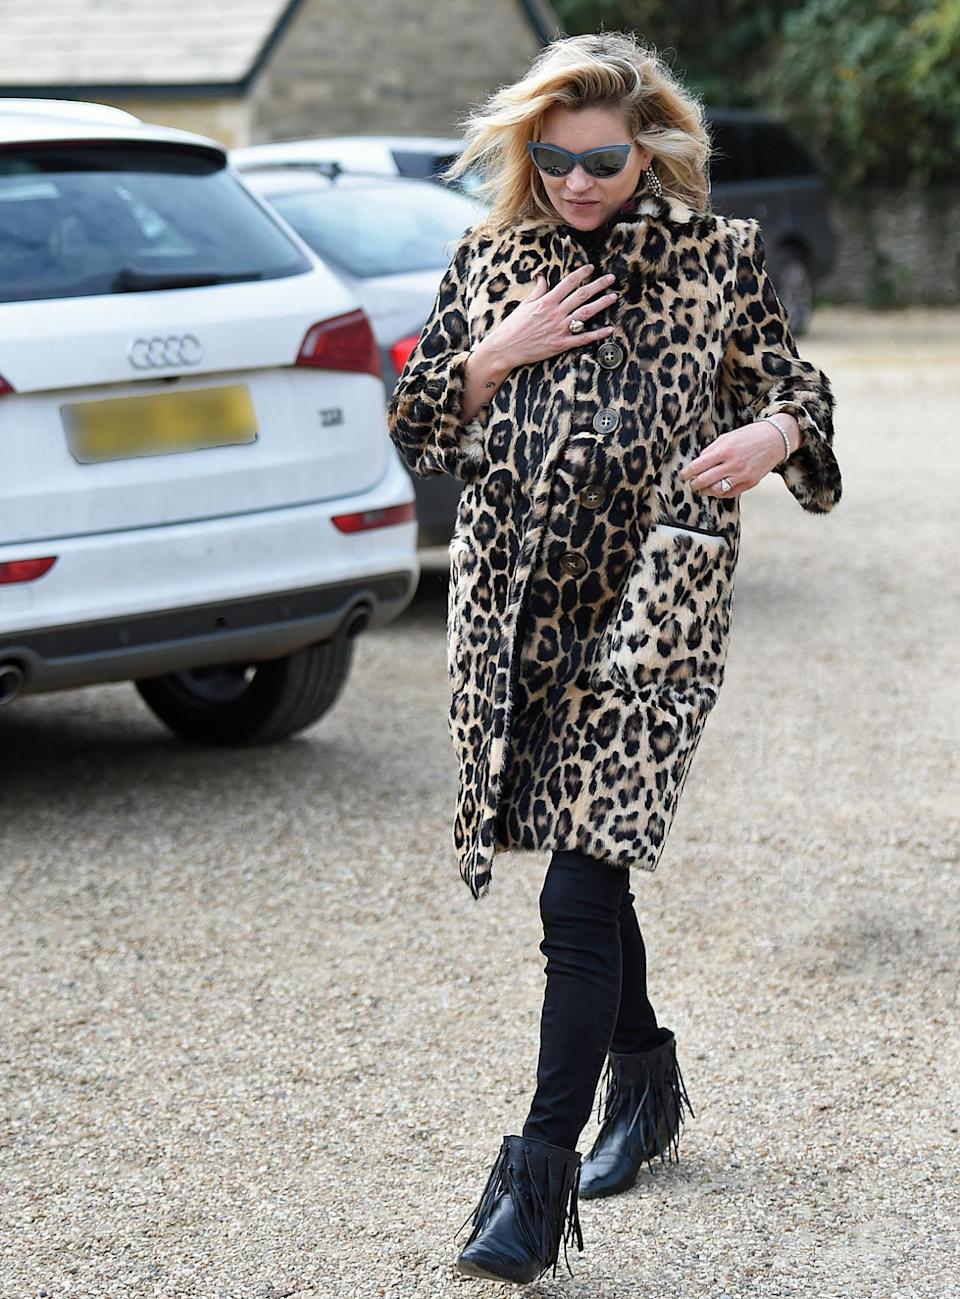 """<p>Moss has made the leopard coat one of her eternal style staples — and she's <a href=""""https://www.yahoo.com/style/leopard-print-coats-forever-and-c1418684900349/photo-jennifer-lawrence-photo-1418845360591.html"""" data-ylk=""""slk:in good company;outcm:mb_qualified_link;_E:mb_qualified_link;ct:story;"""" class=""""link rapid-noclick-resp yahoo-link"""">in good company</a>.</p>"""